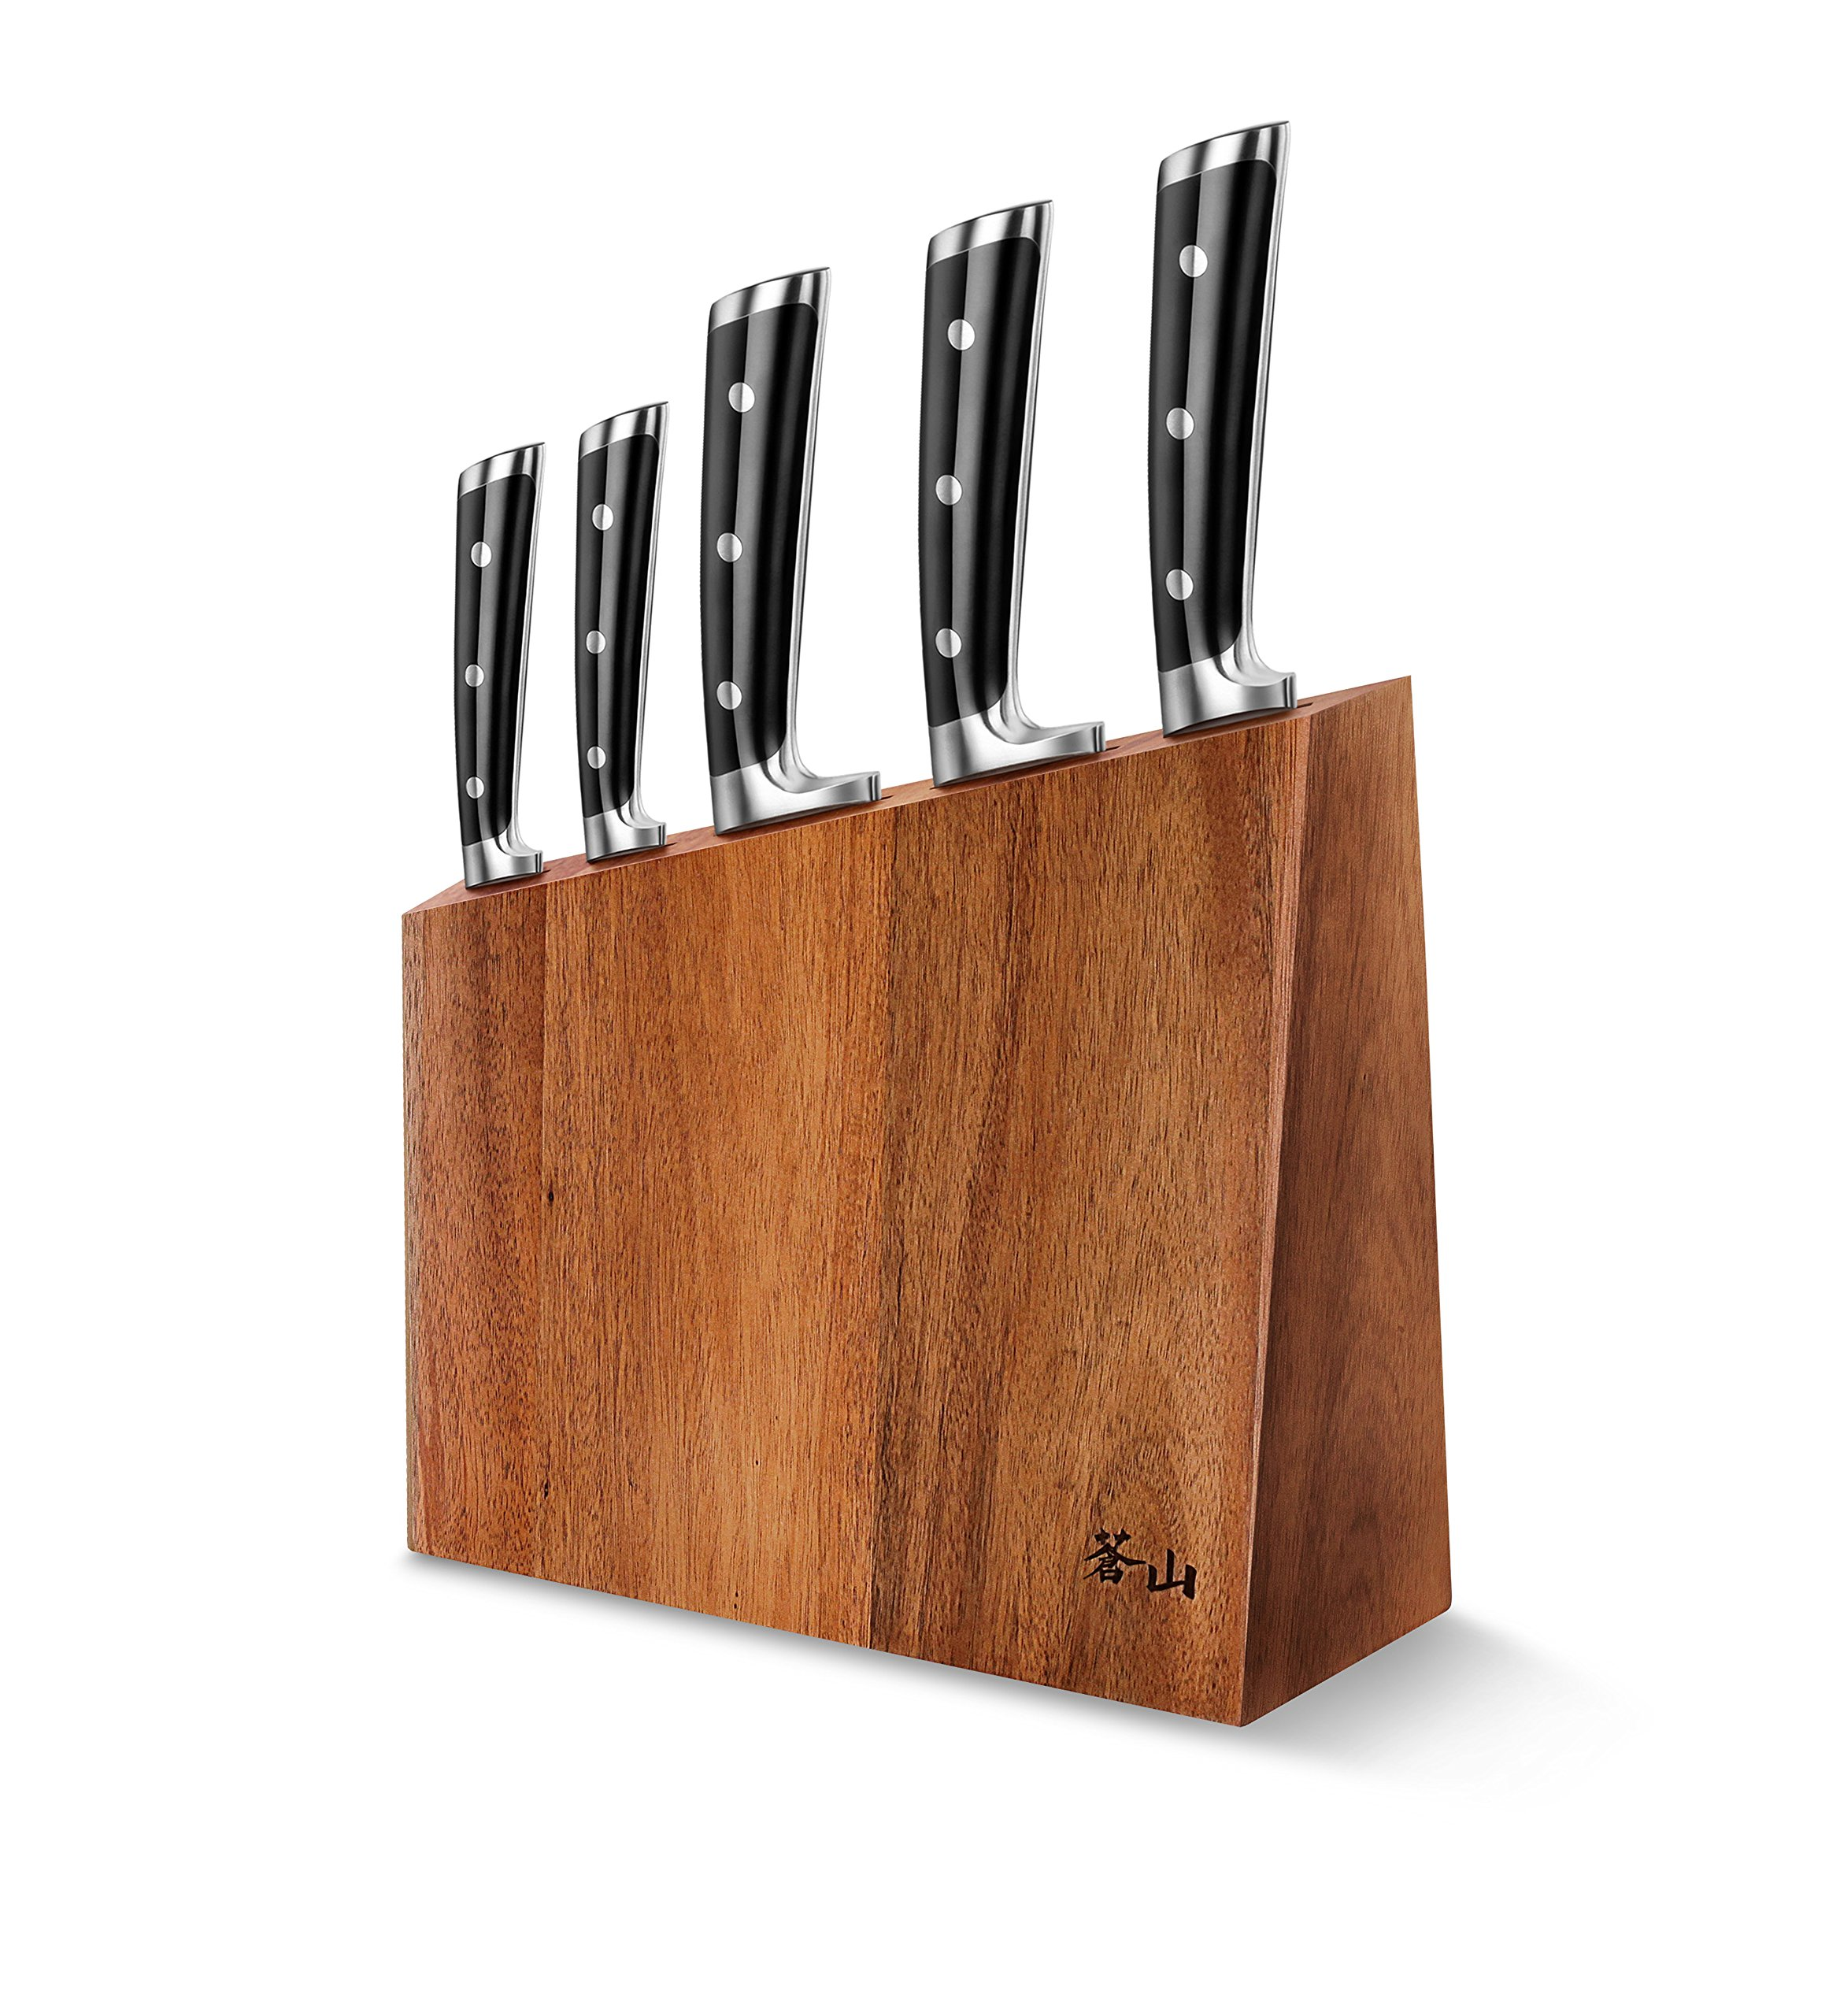 Cangshan S Series 59656 6-Piece German Steel Forged Knife Block Set by Cangshan (Image #9)